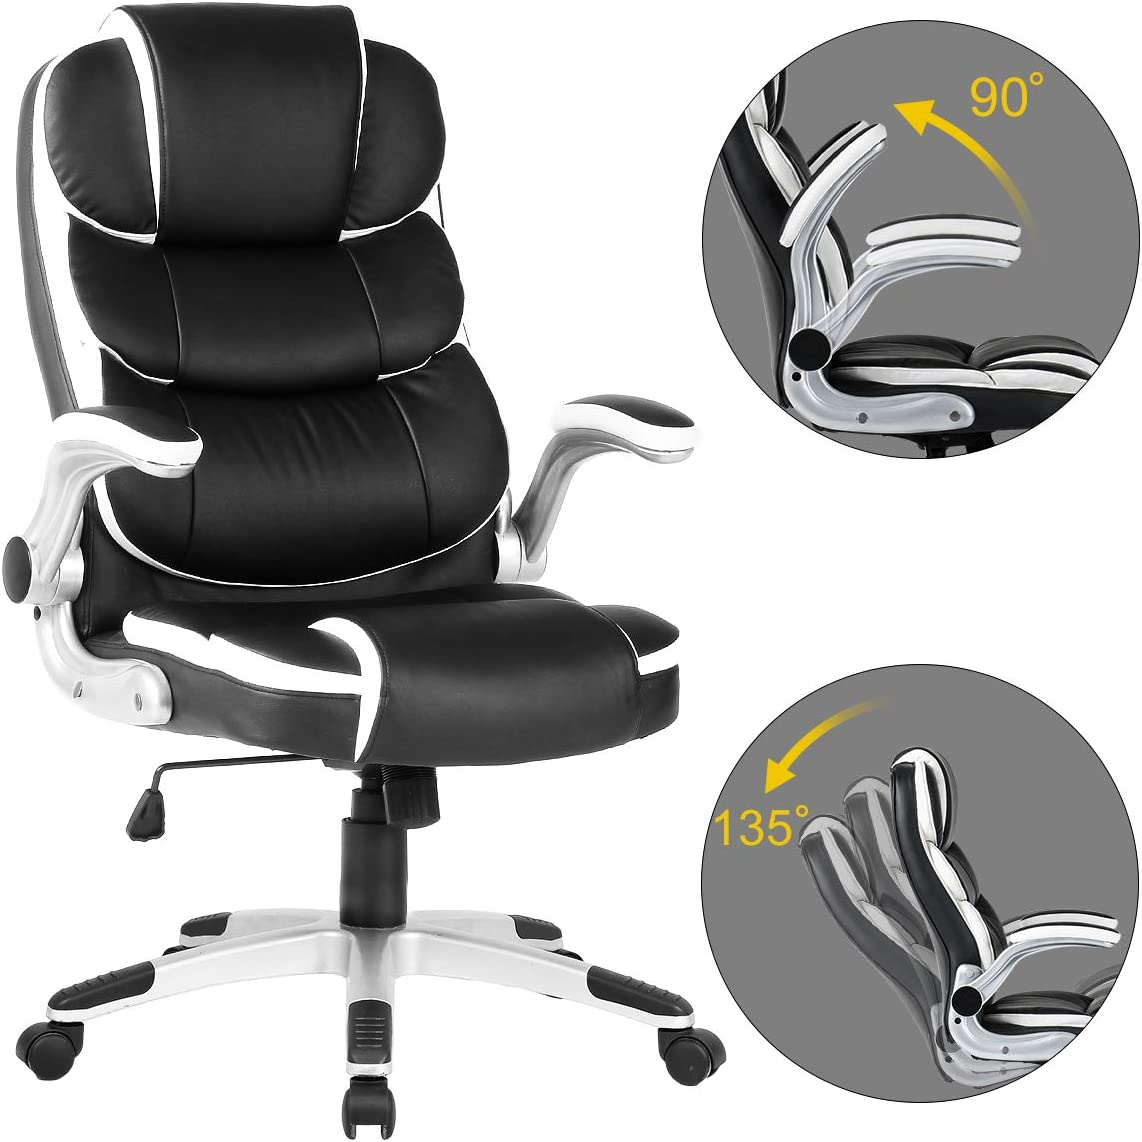 YAMASORO Leather Ergonomic Executive Office Chair Adjustable Tilt Angle High Back Executive Computer Desk Chair Black